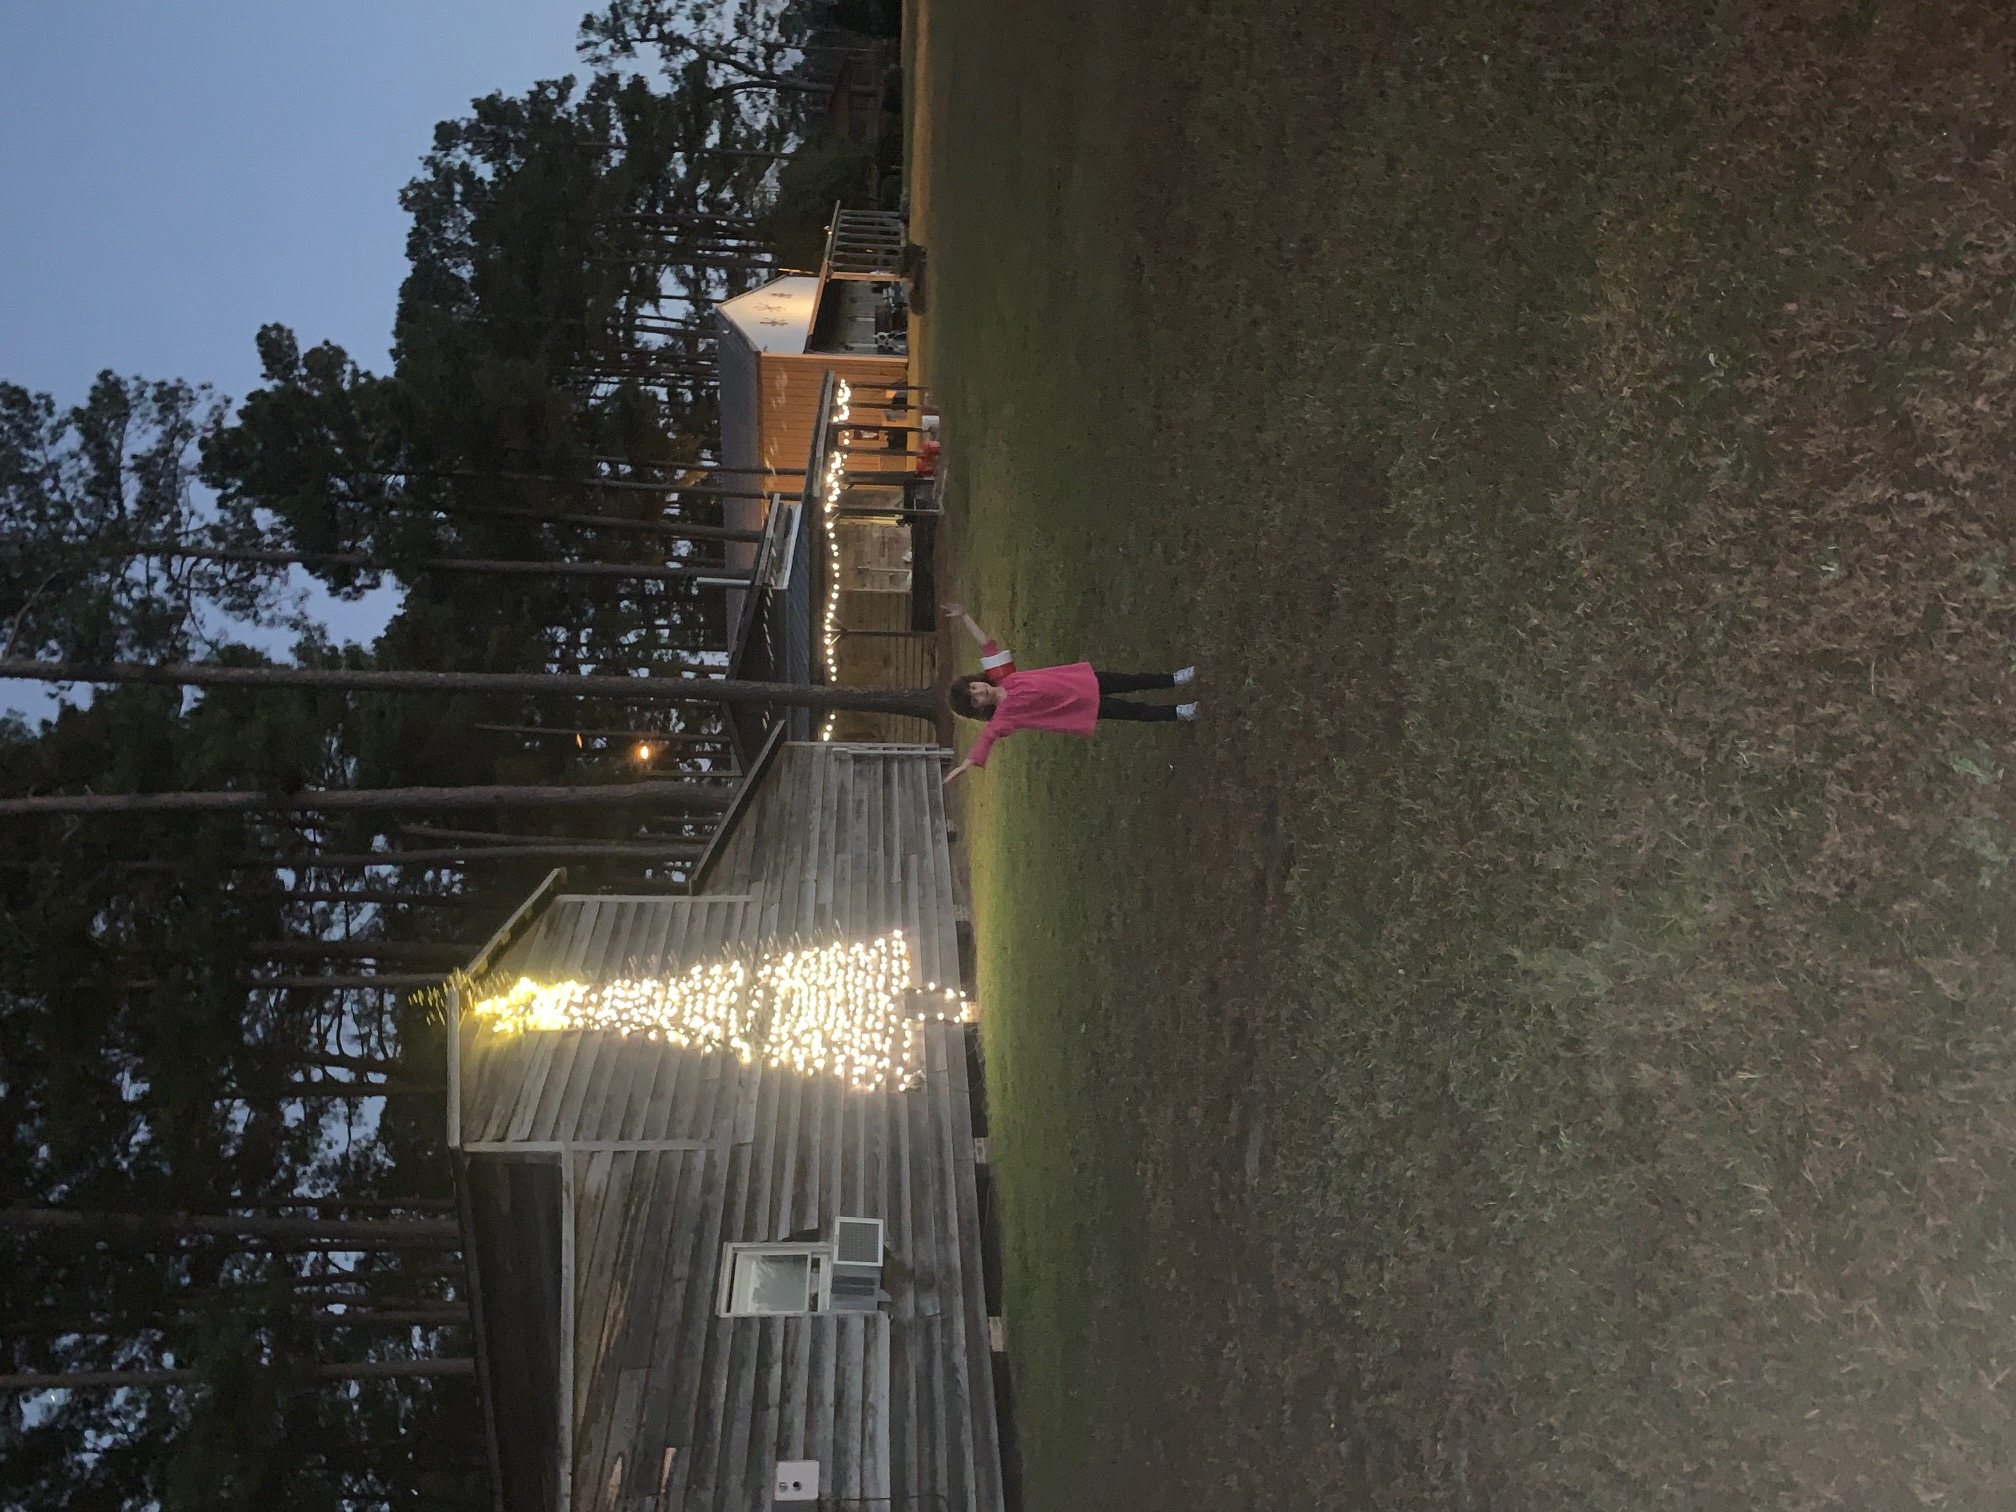 A little girl standing in front of the Christmas tree light design on the back of the packhouse.